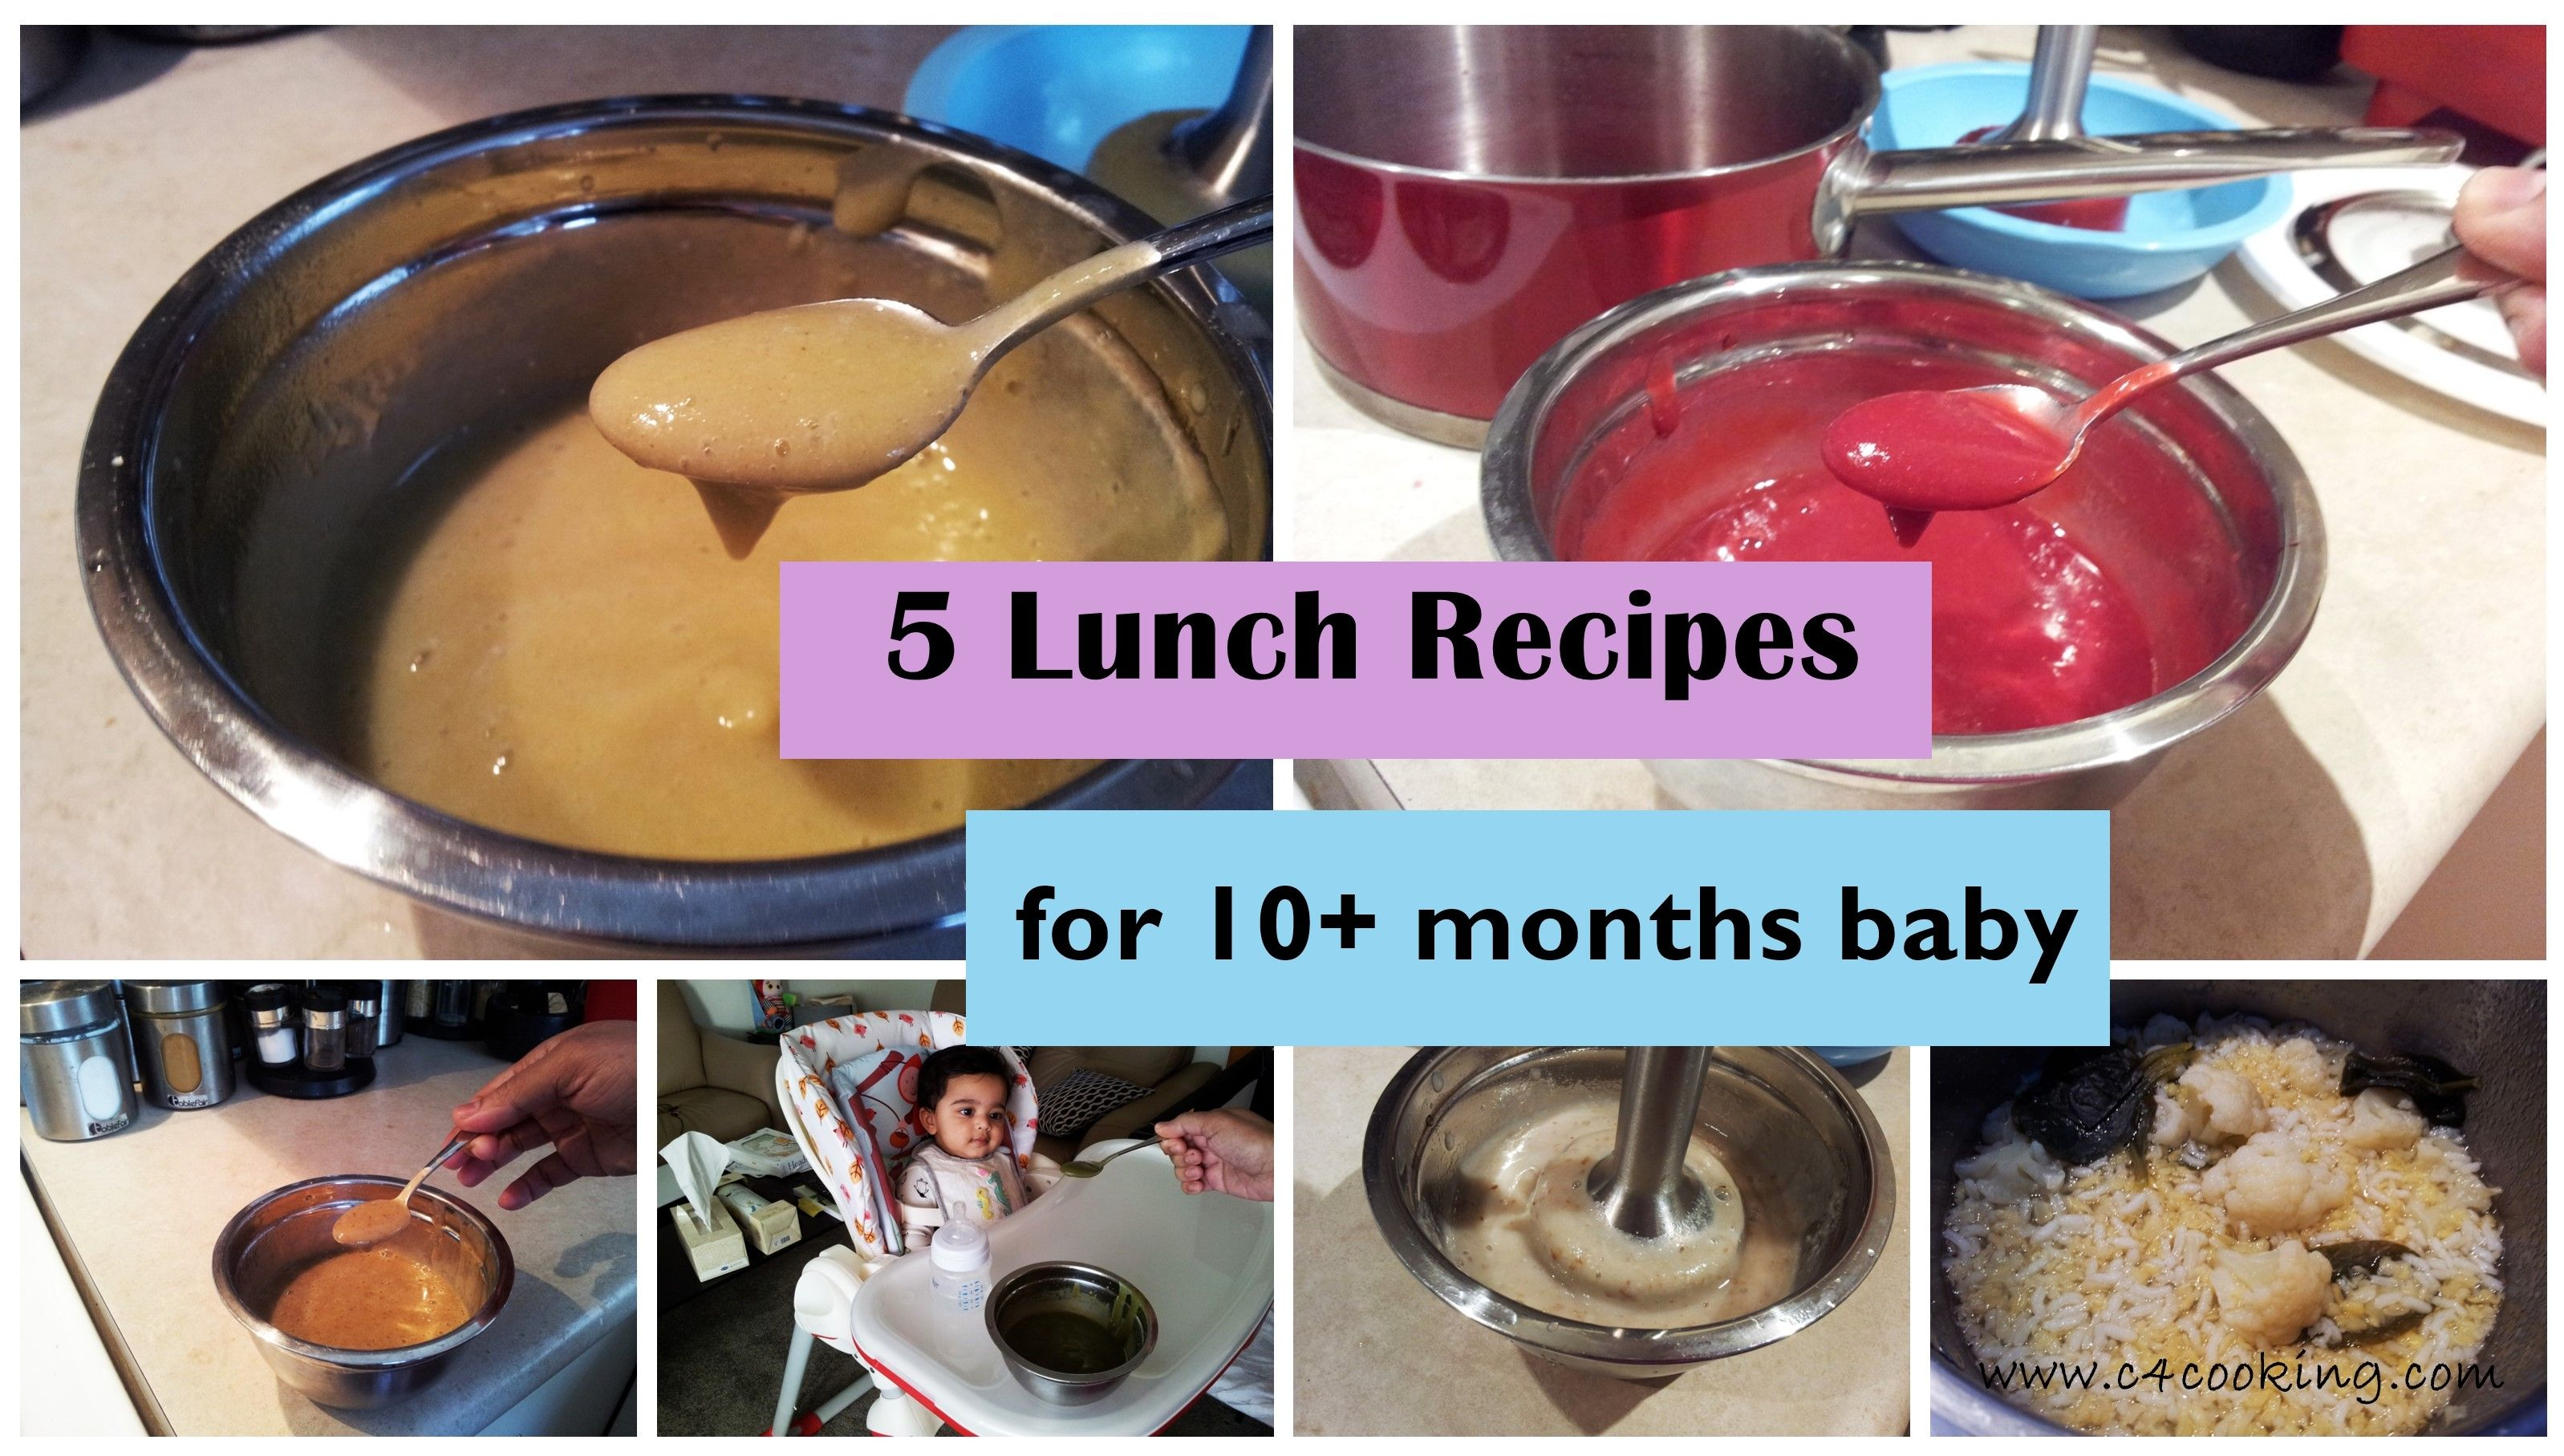 10 11 months baby food recipes 10 11 months baby food 10 11 months baby food recipes forumfinder Choice Image